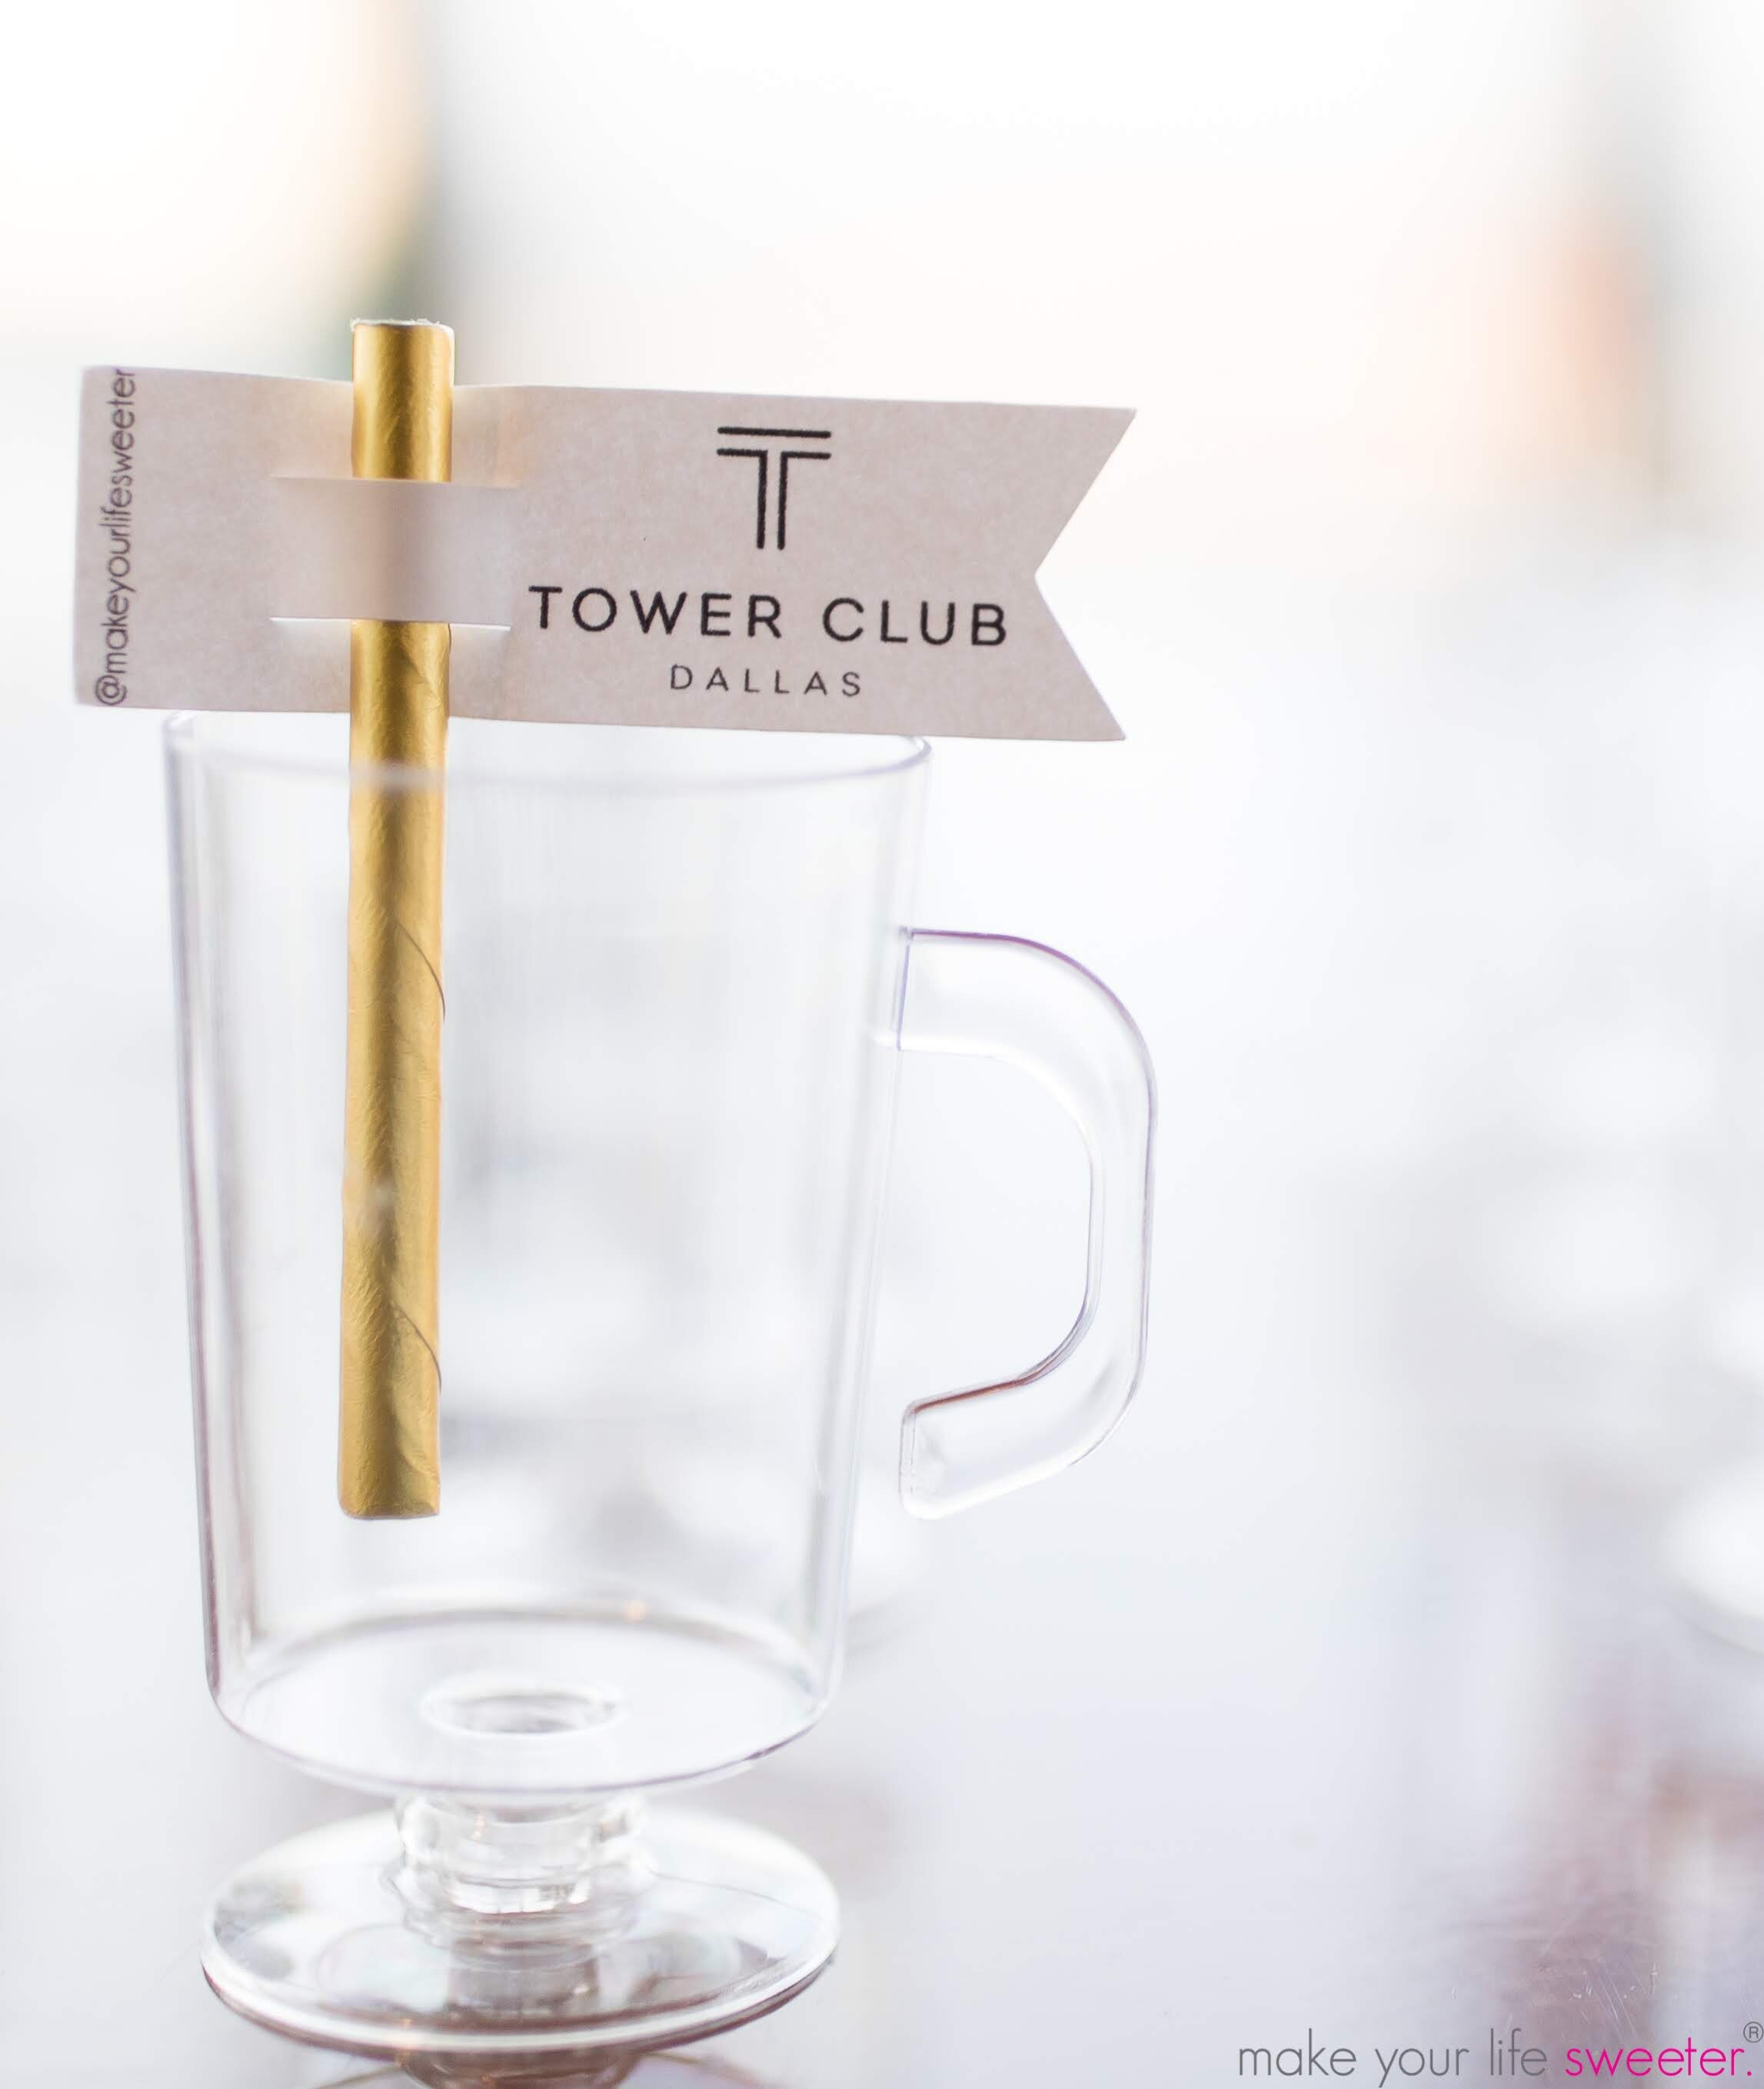 Make Your Life Sweeter Events - Tower Club Grand Opening: Sugaire Organic Cotton Candy Hot Tea Infusion Bar